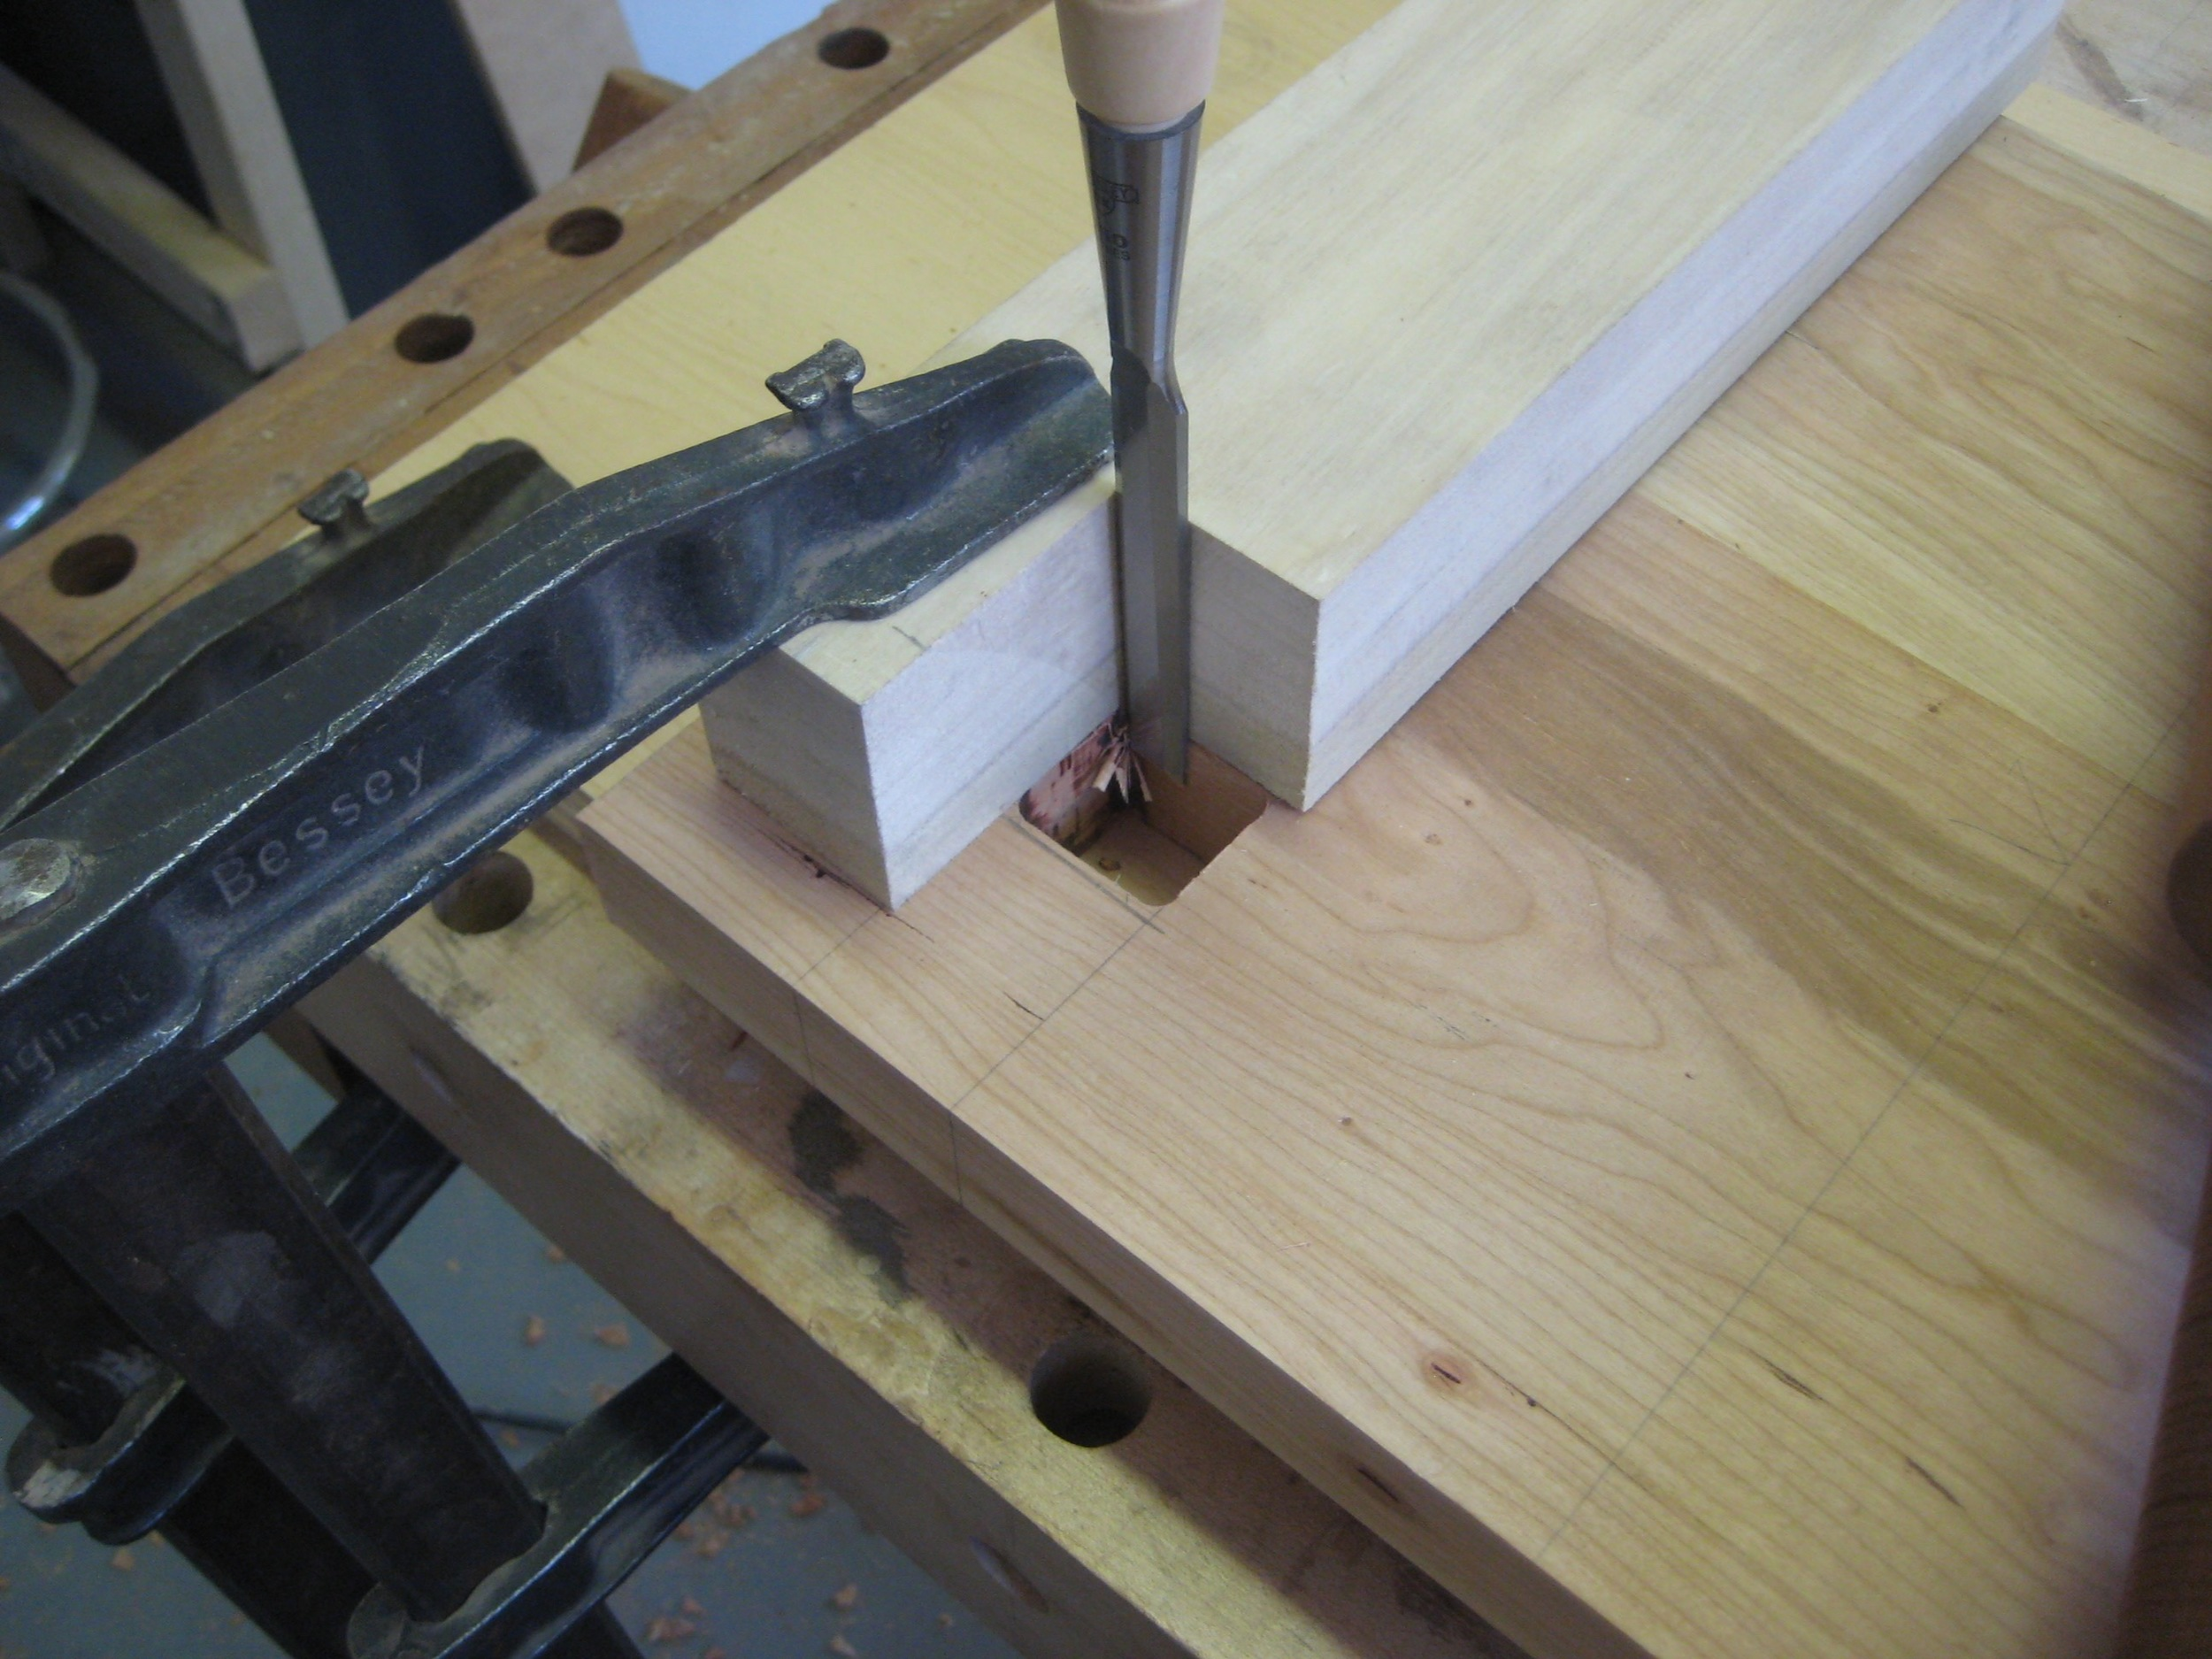 Finally I chopped out the corners left by the router to make a perfect square hole.